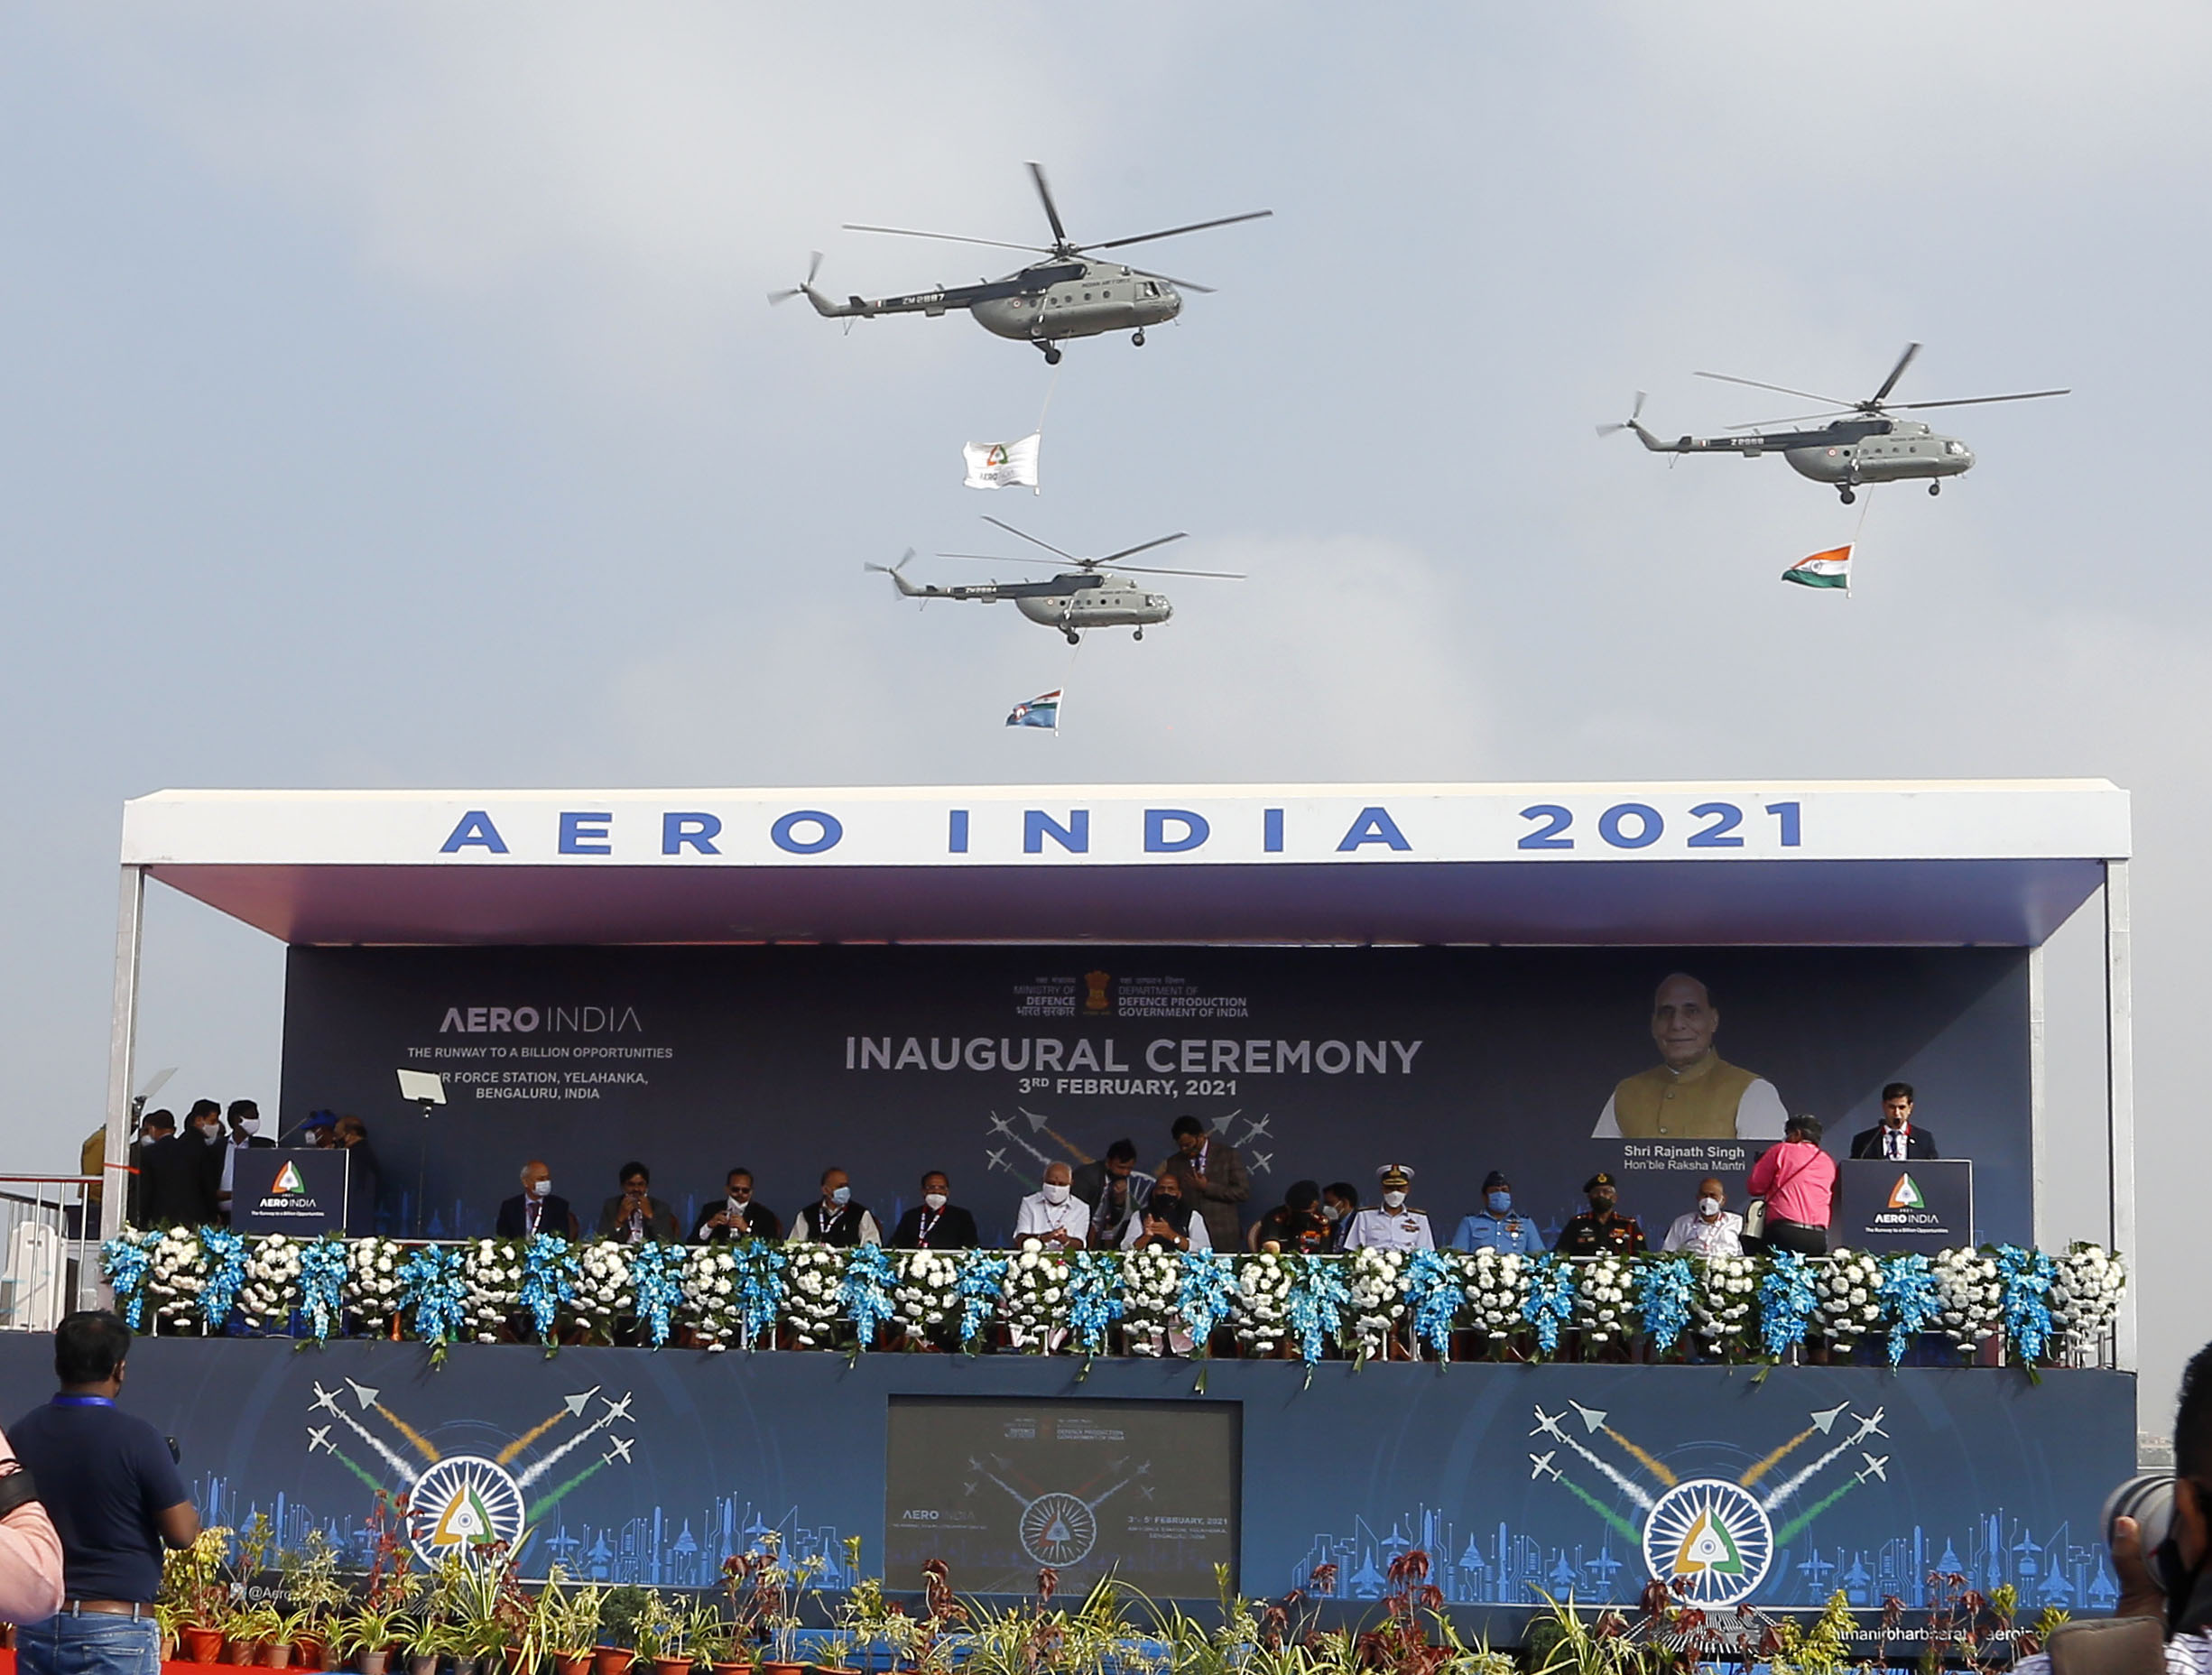 The Union Minister for Defence, Shri Rajnath Singh inaugurates the biennial air show, Aero India 2021, at the Air Force Station, Yelahanka, in Bengaluru on February 03, 2021.	The Union Minister for Chemicals and Fertilizers, Shri D.V. Sadananda Gowda, the Chief Minister of Karnataka, Shri B.S. Yediyurappa, the Chief of Defence Staff (CDS), General Bipin Rawat and other dignitaries are also seen.